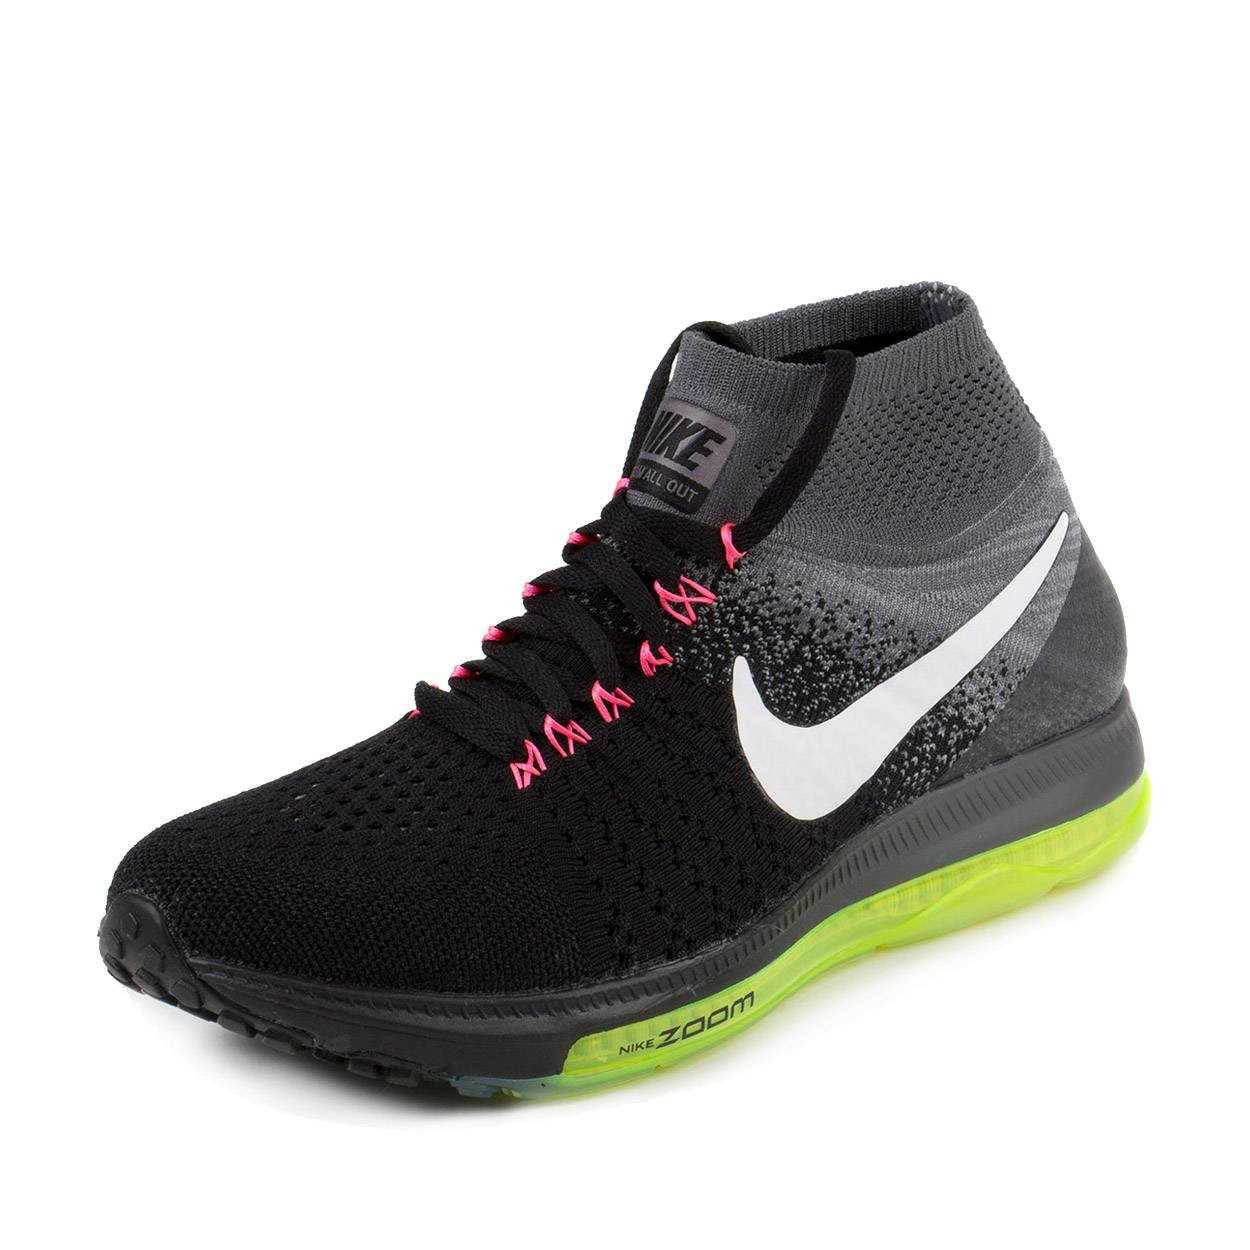 886a6c08f852 Galleon - Nike Womens Zoom All Out Flyknit Running Trainers 845361 Sneakers  Shoes (US 7